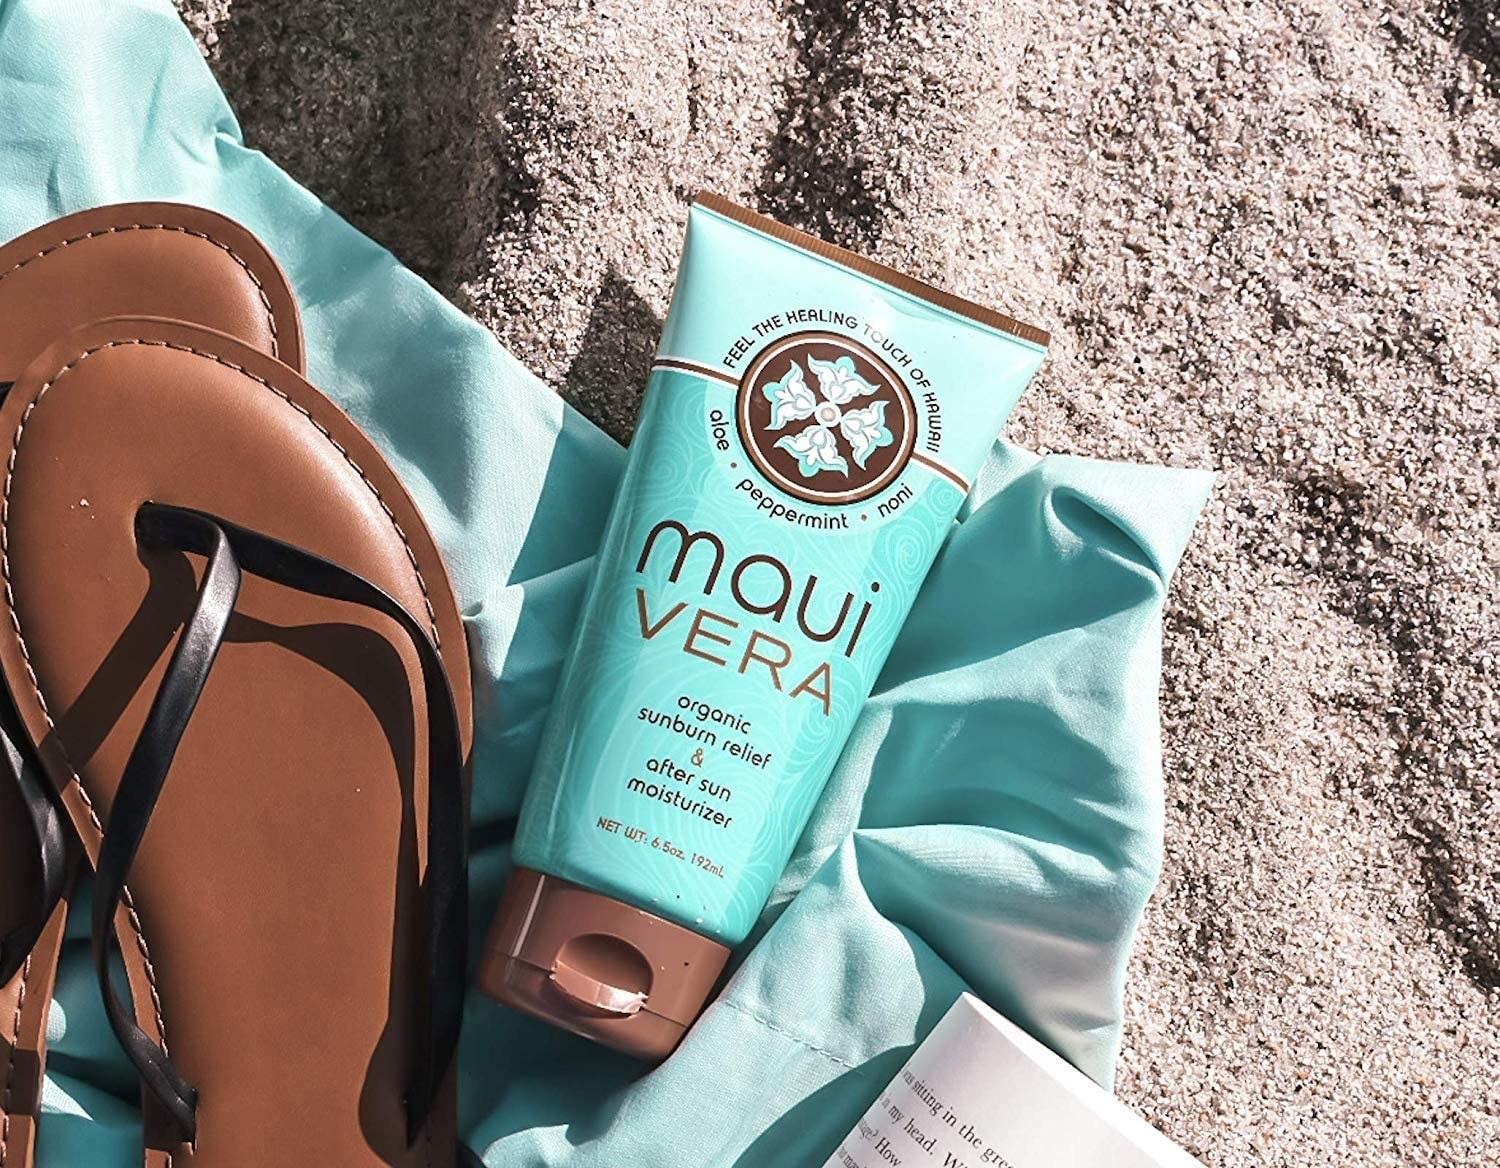 A tube of after sun moisturizer on a beach blanket next to flip flops